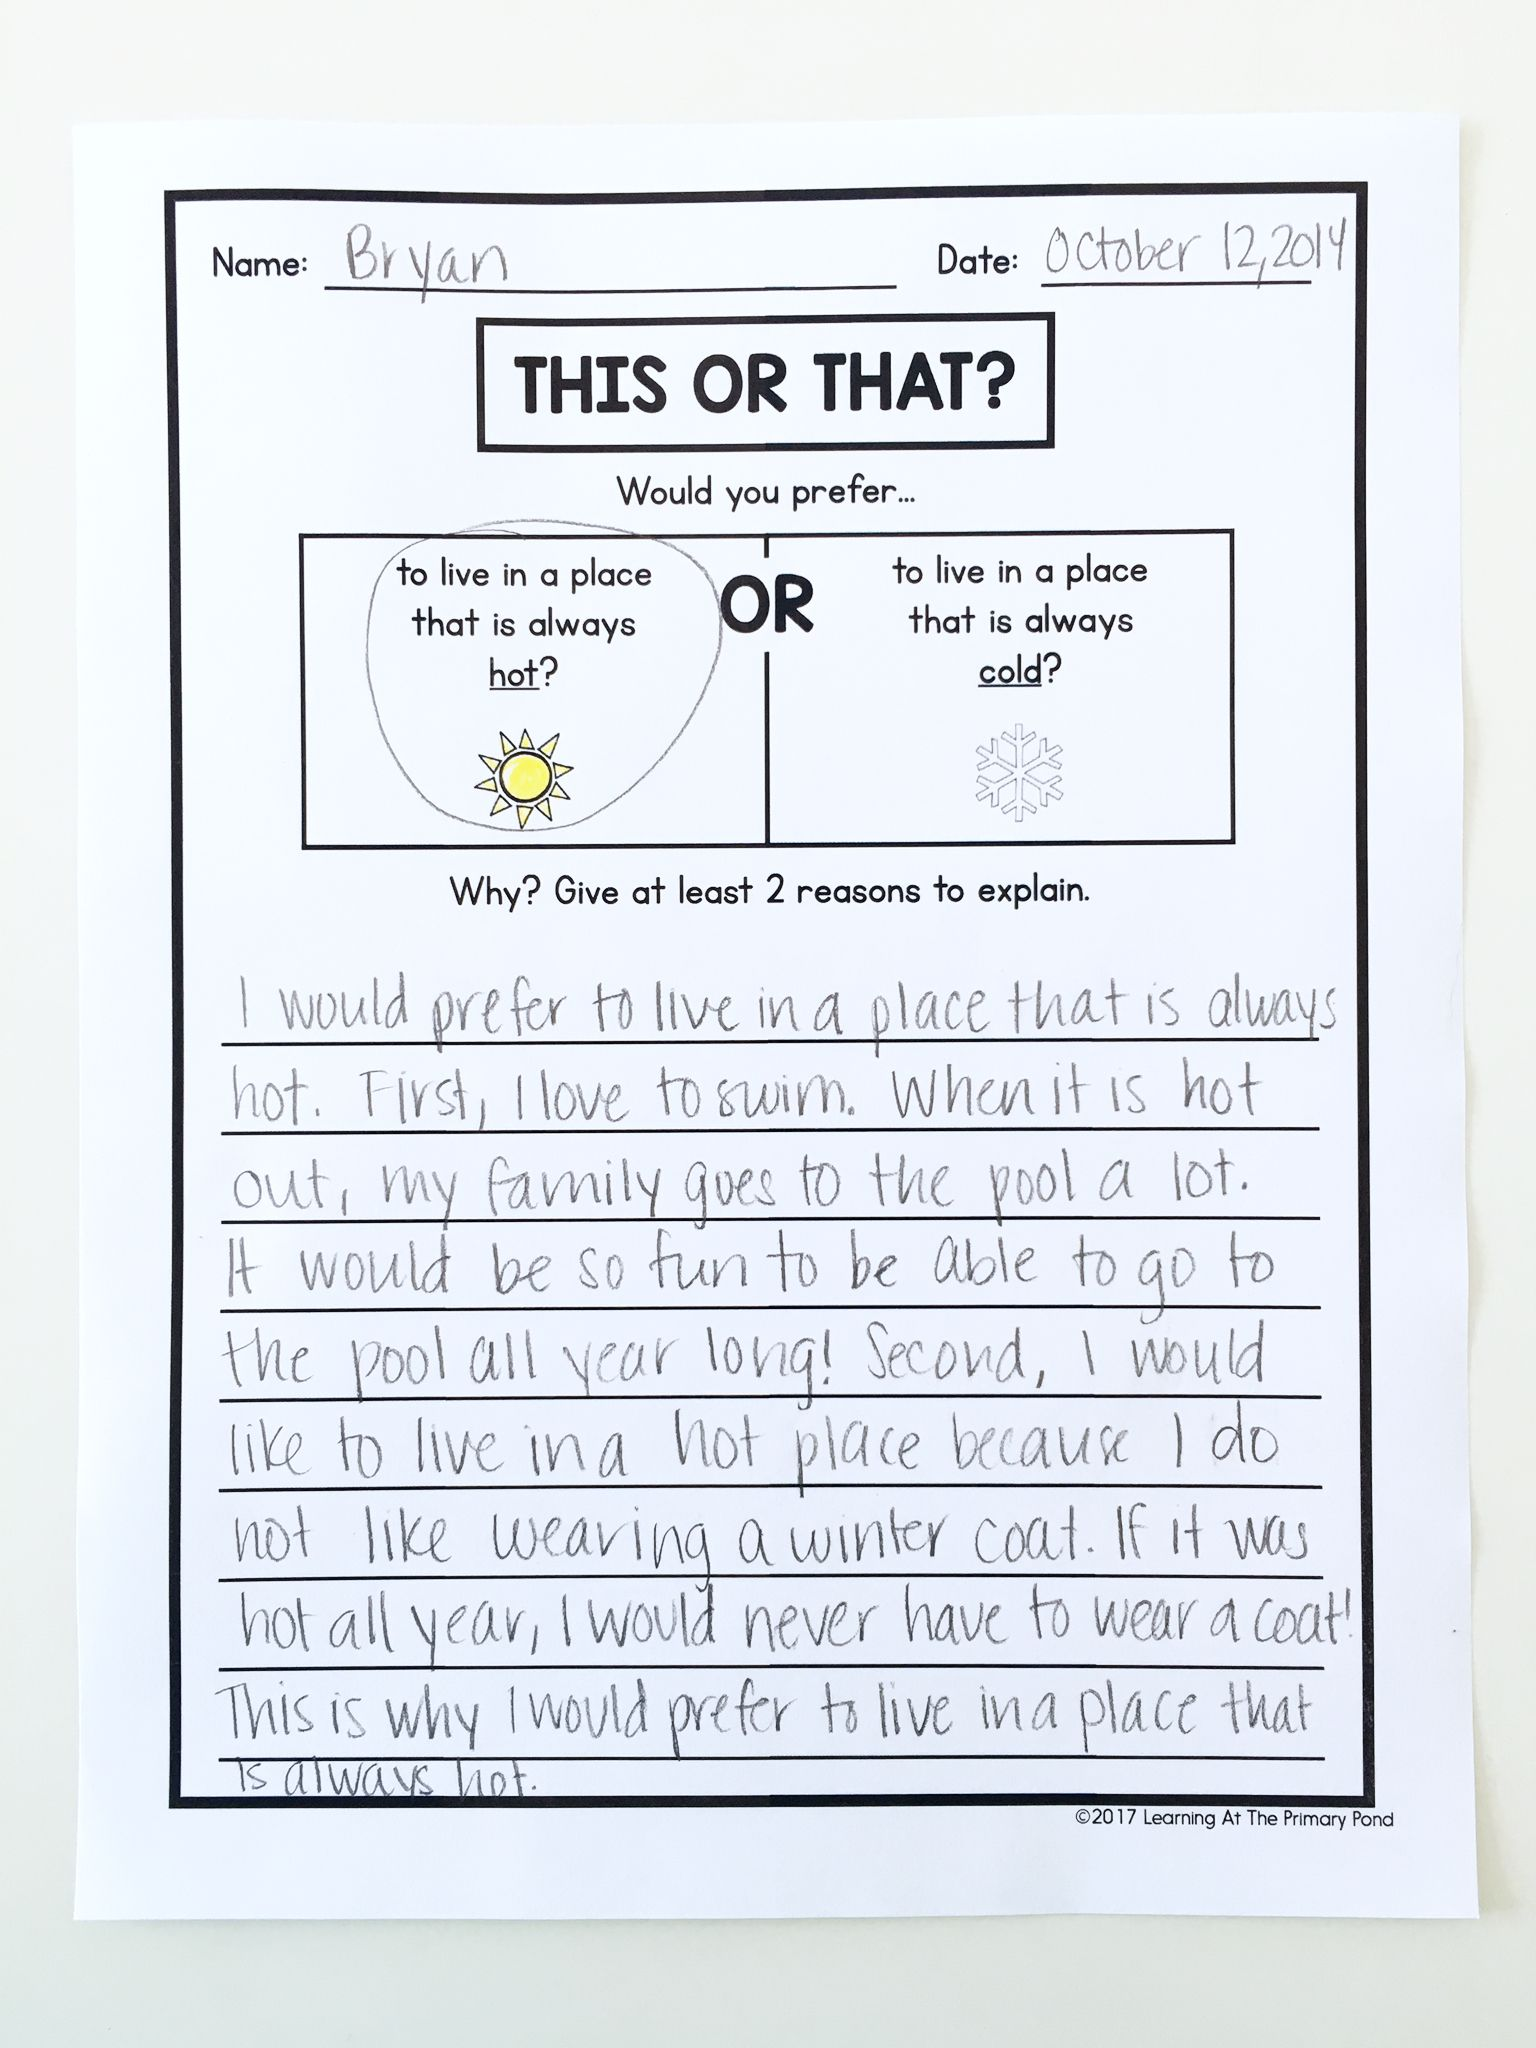 medium resolution of Opinion writing activity for second grade - kids choose between two options  and explain their pre…   Writing center